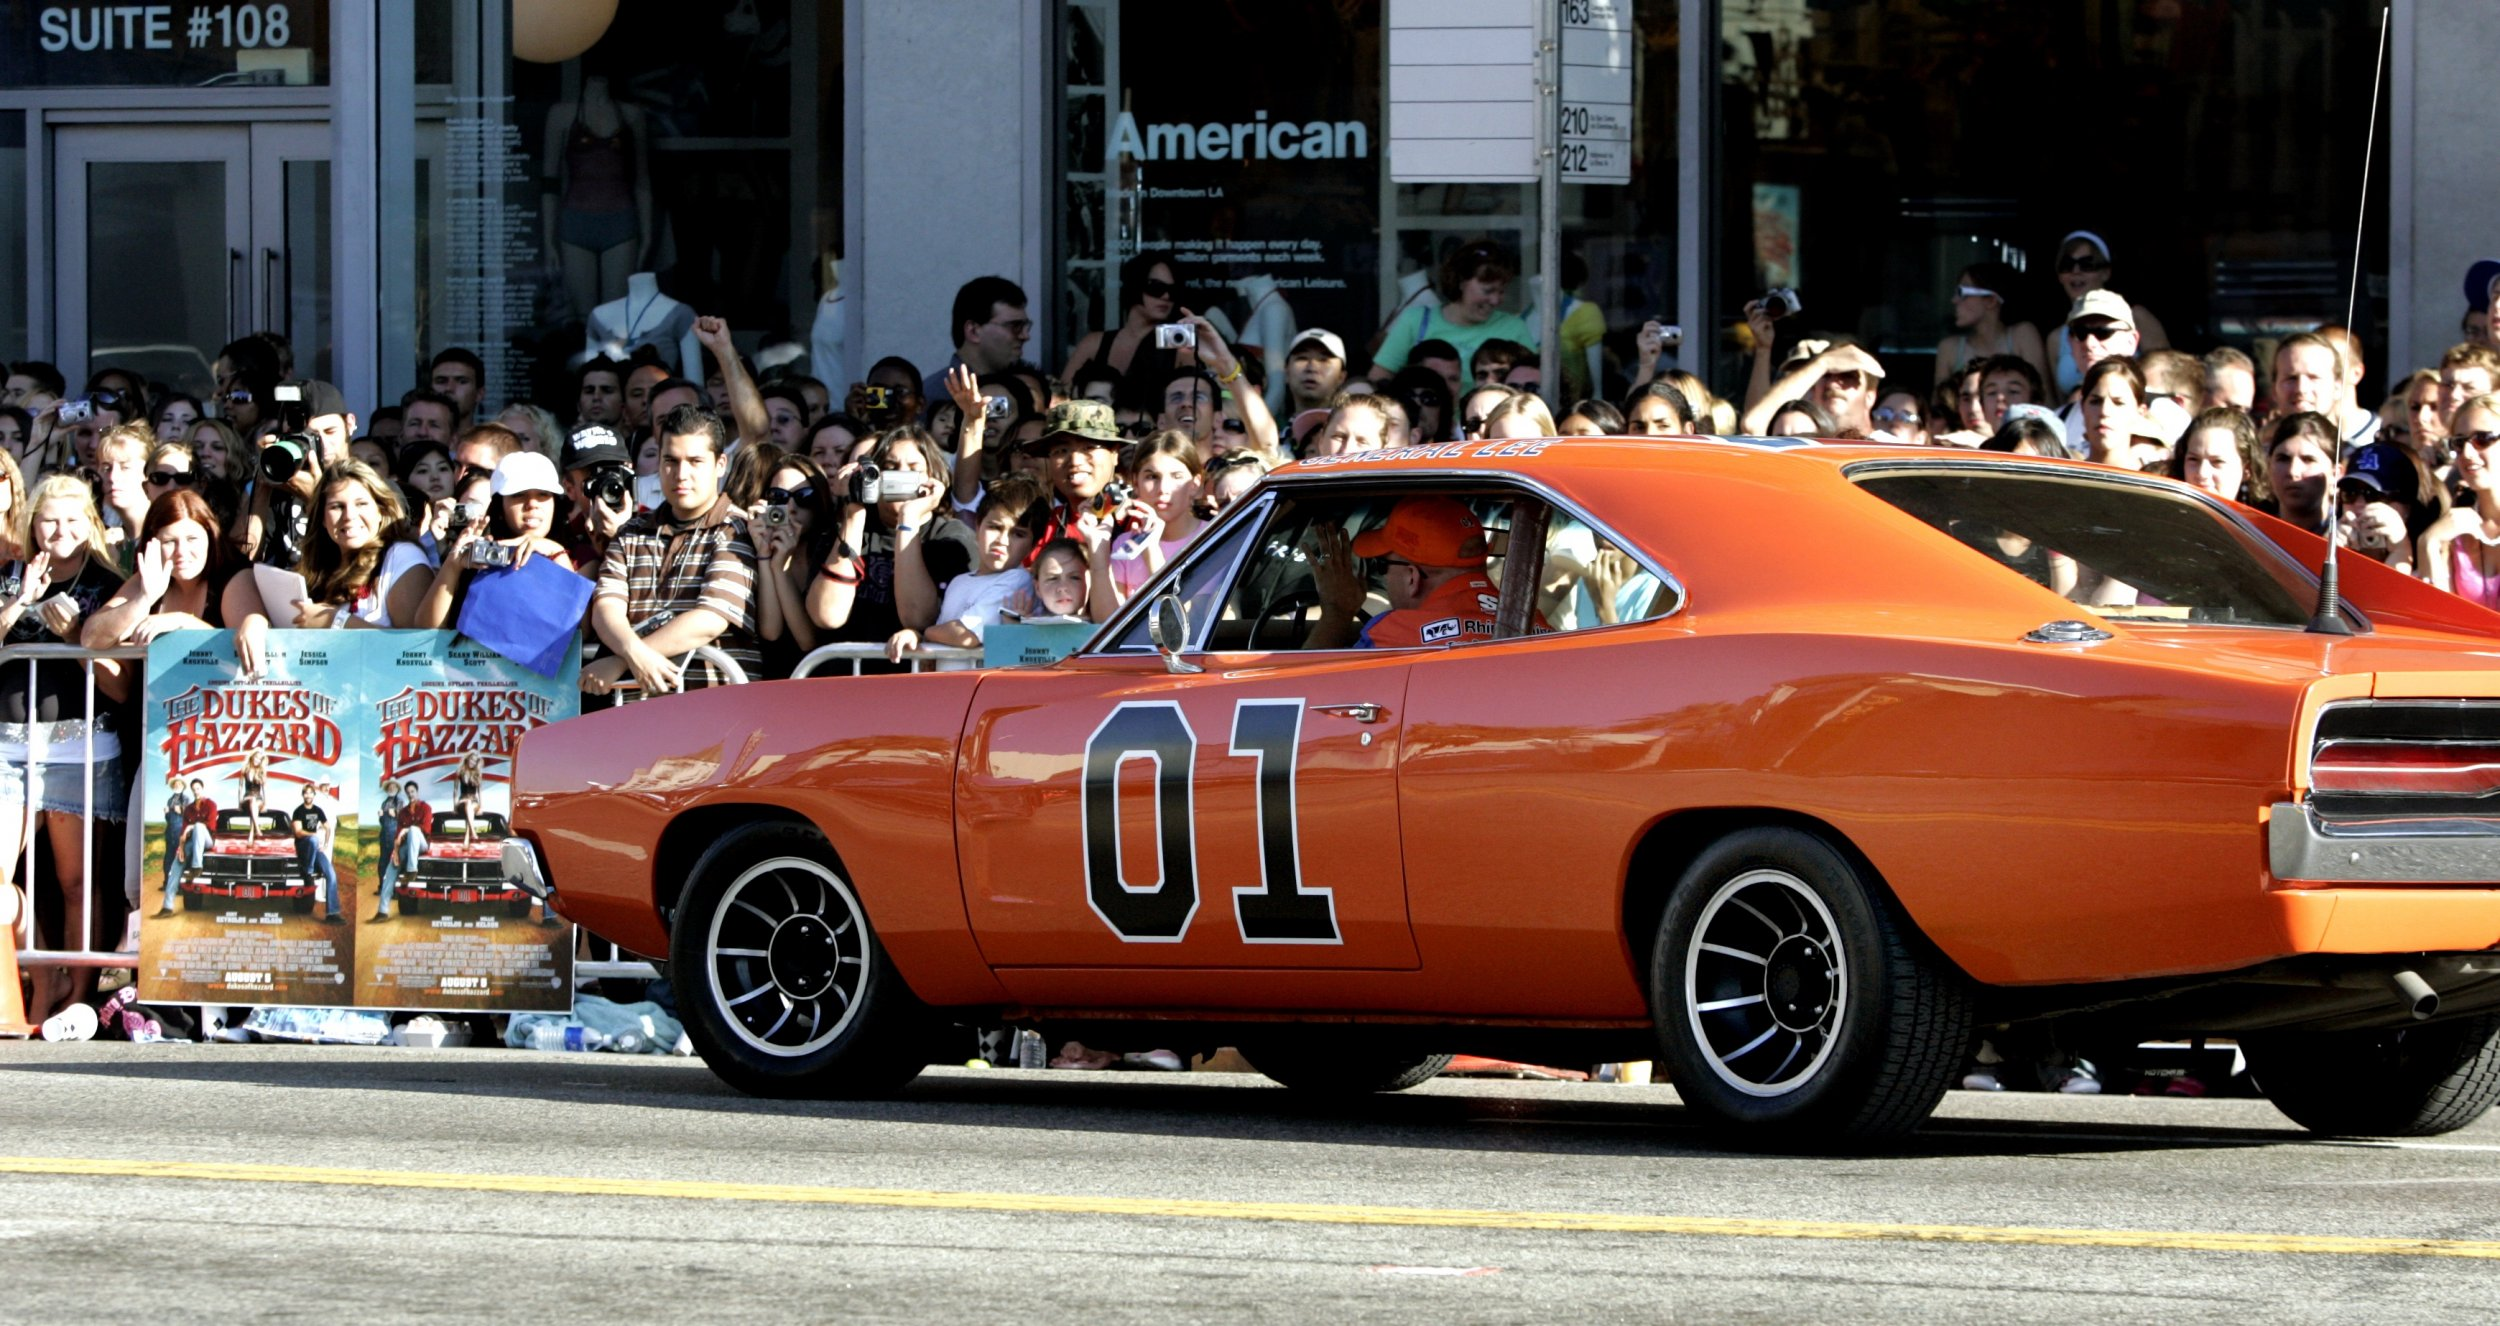 Dodge Charger Muscle Car Wallpaper Bubba Watson Will Paint Over Confederate Flag On The